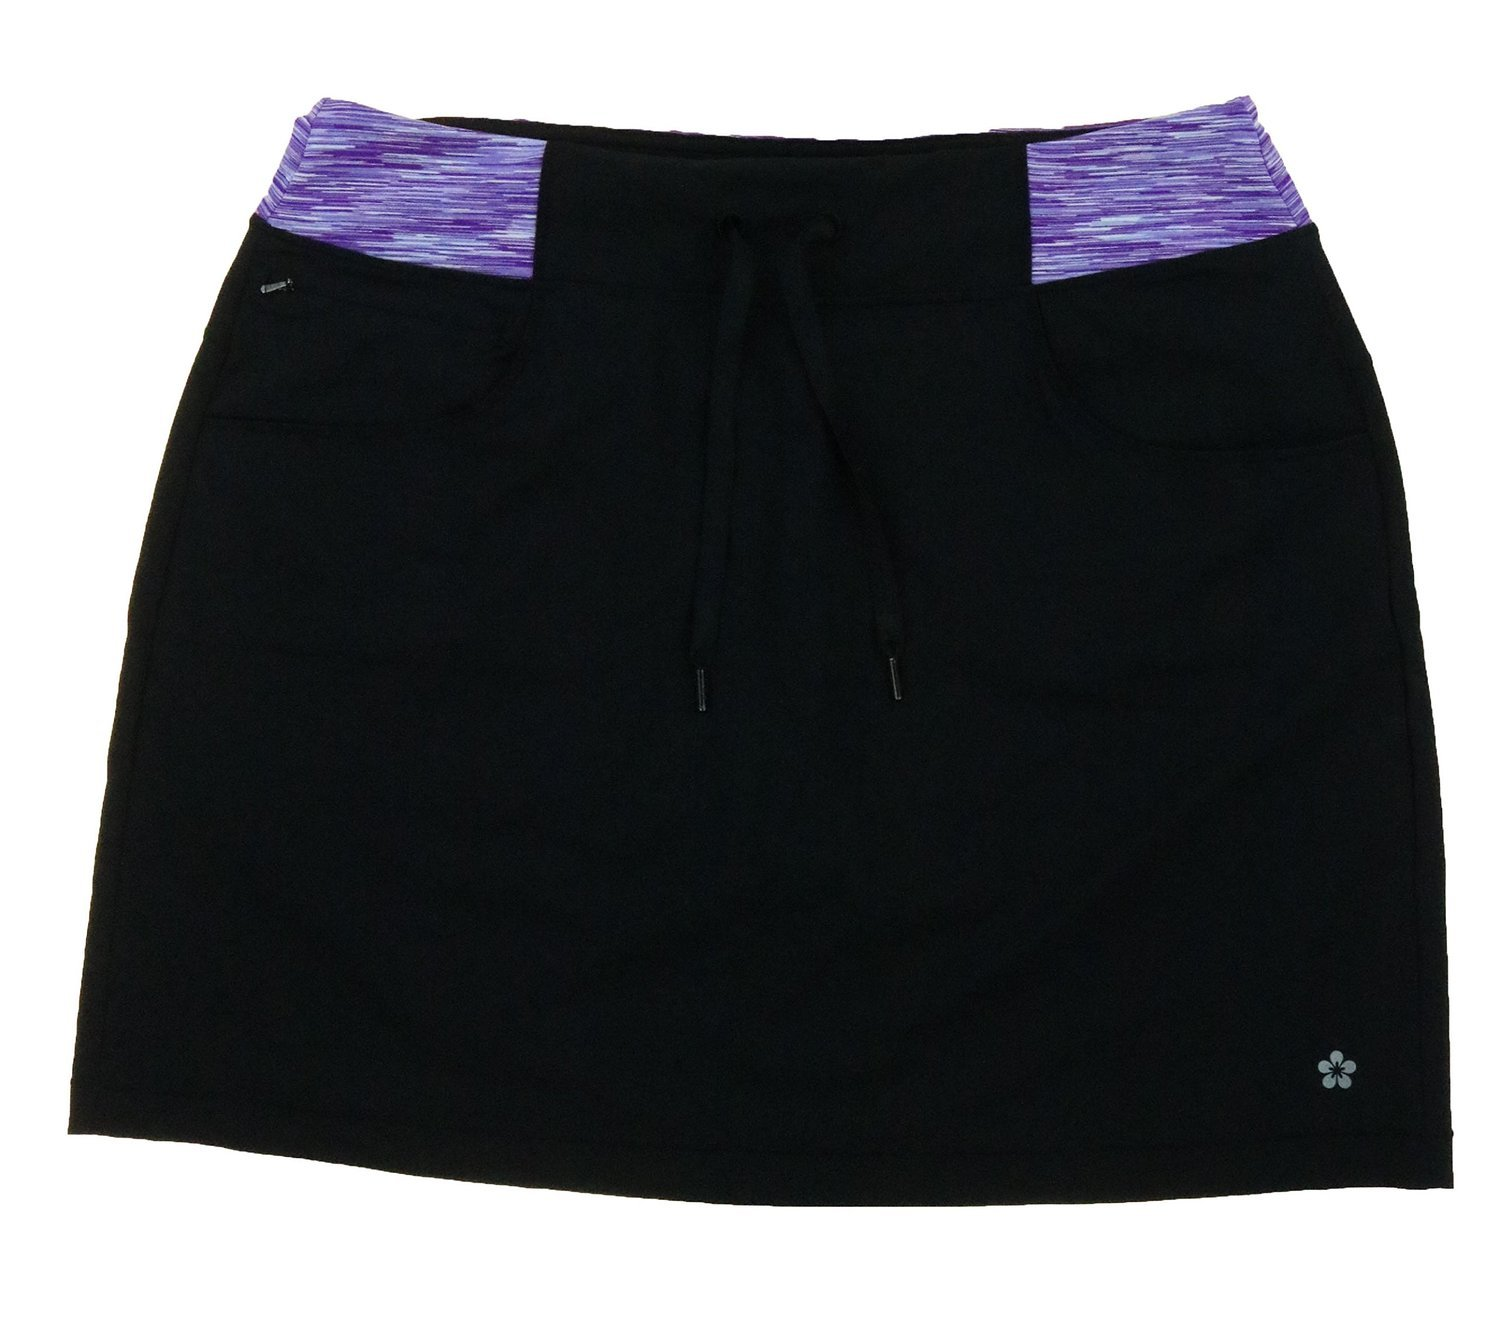 Tuff Women's Athletic Active Yoga Skort (Medium, Black / Purple Space Dyed)